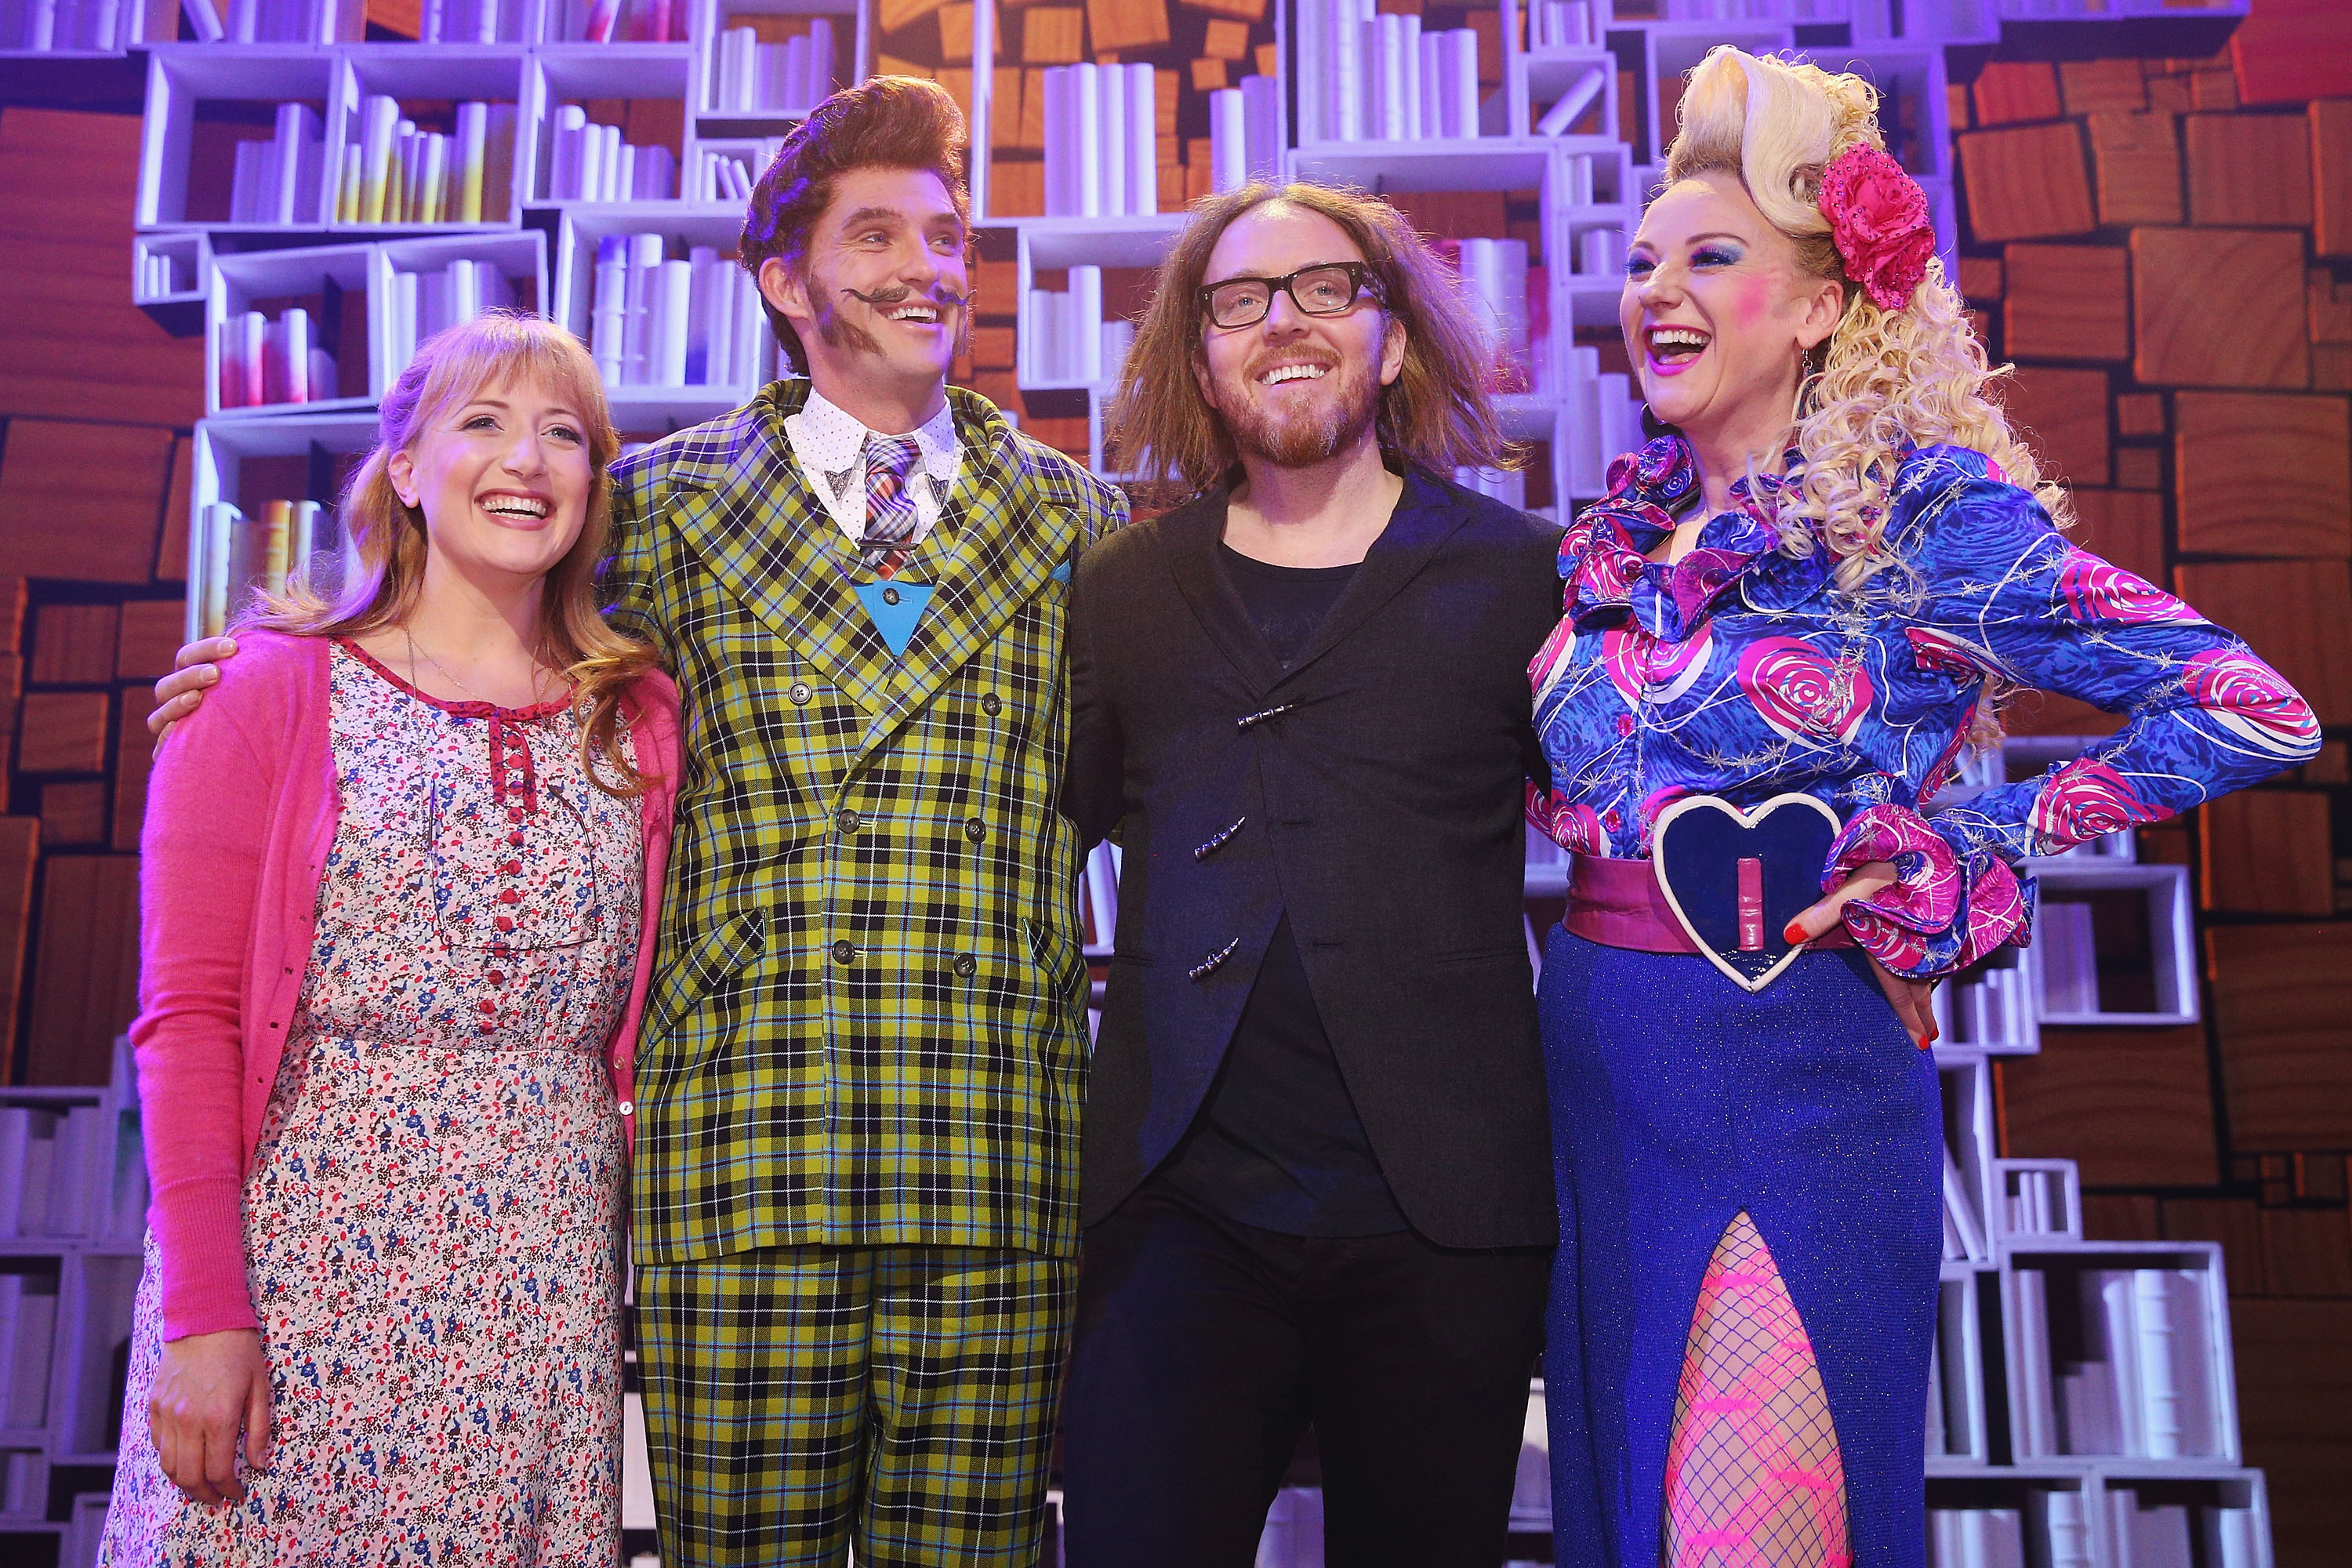 Tim Minchin and cast of Matilda